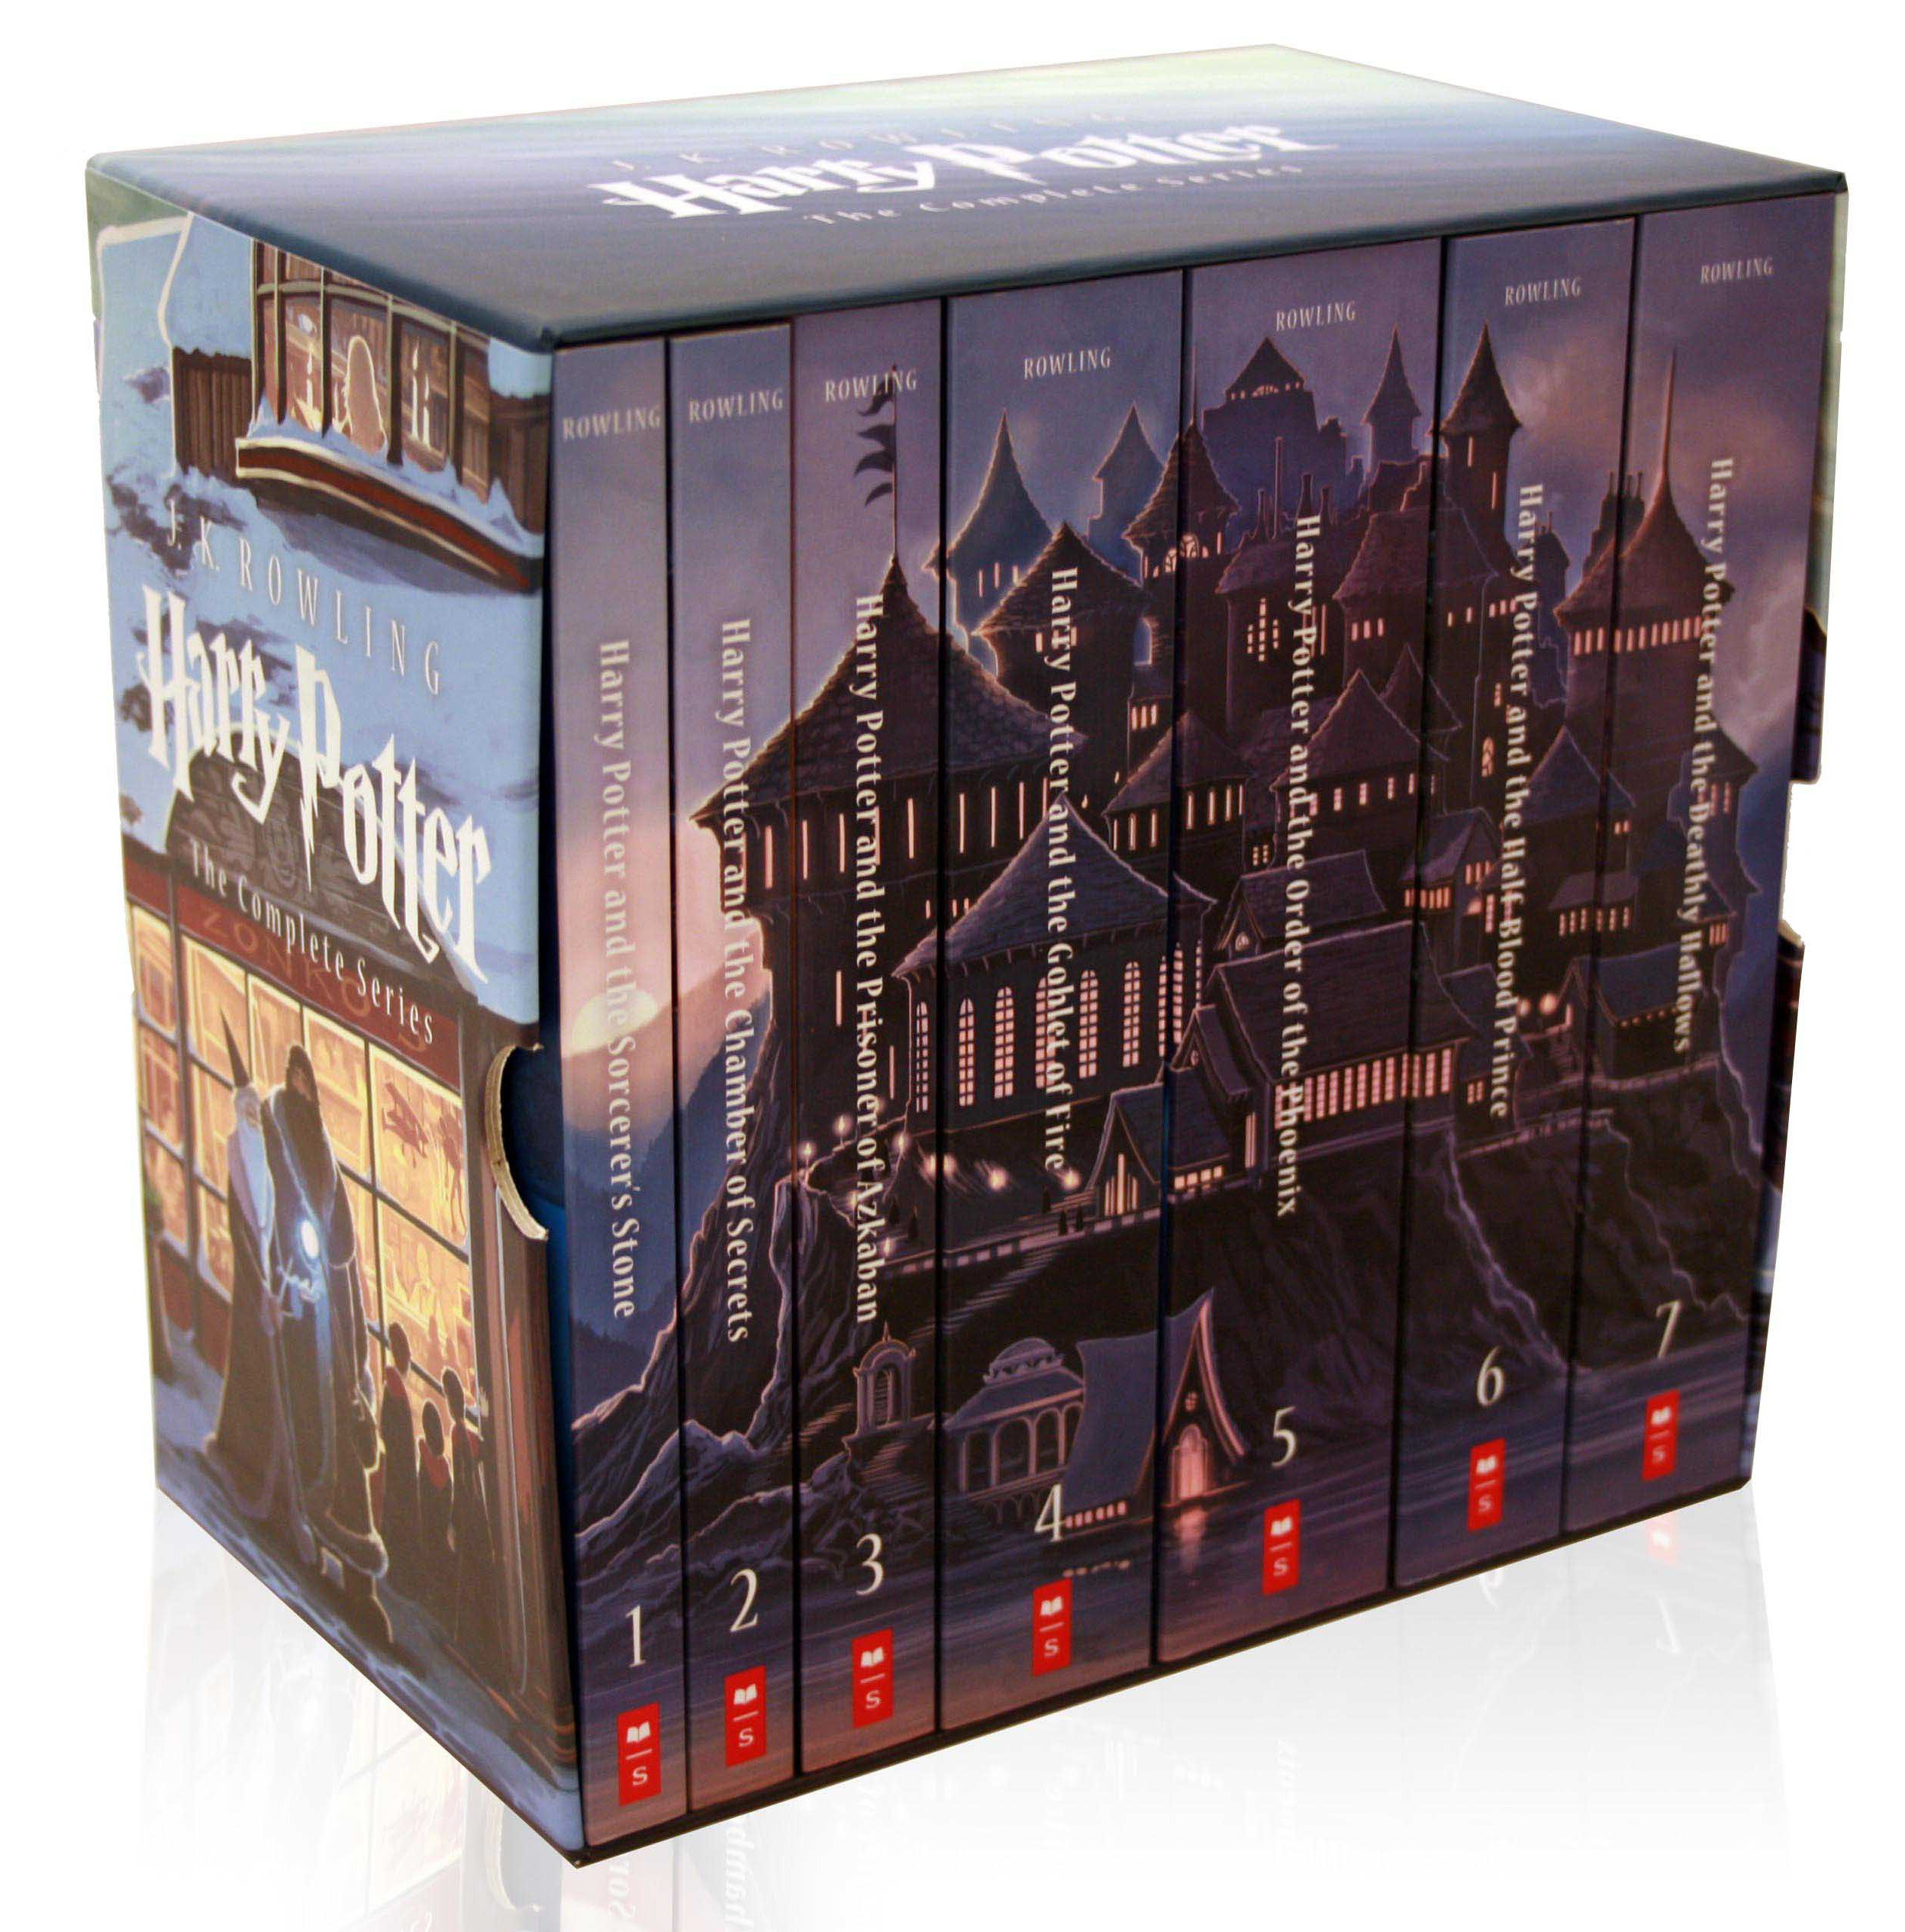 Scholastic To Release Special Edition Boxed Set Of J K